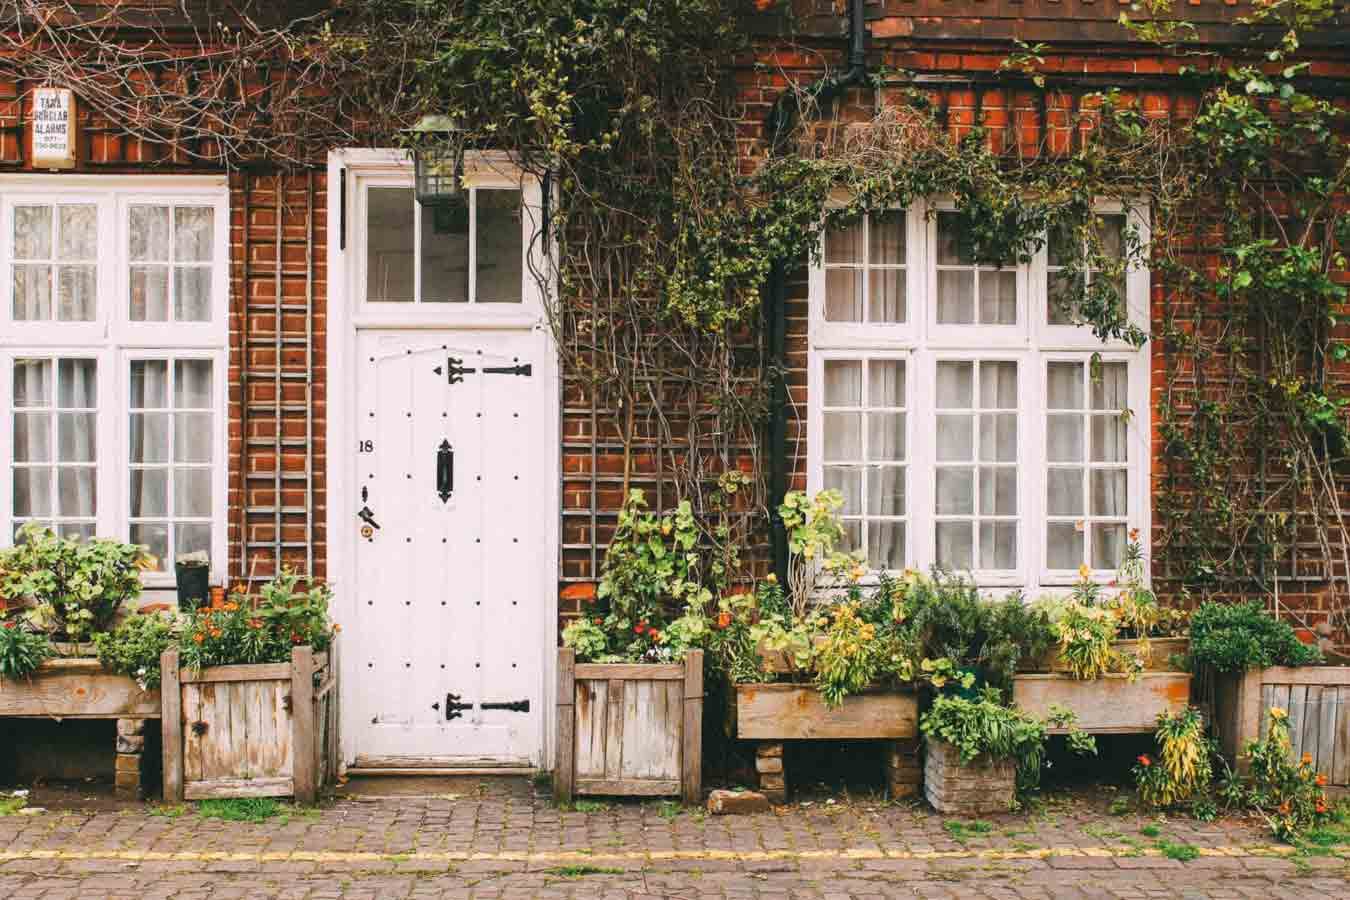 Buying old or period property can be challenging